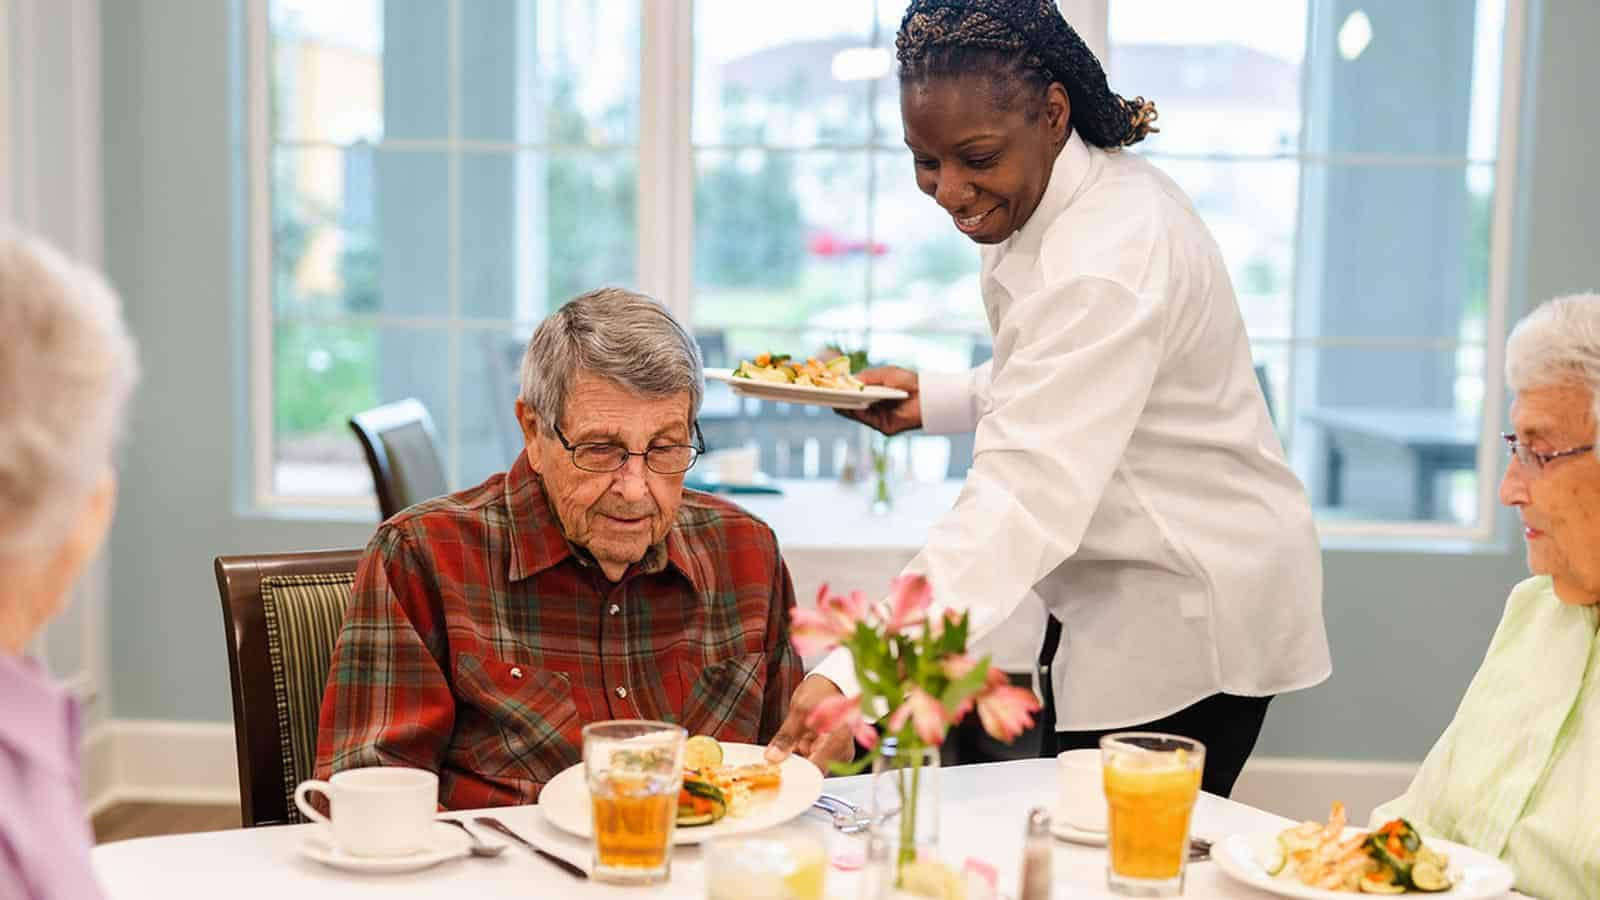 Seniors Dining Table Waitress Serving Food